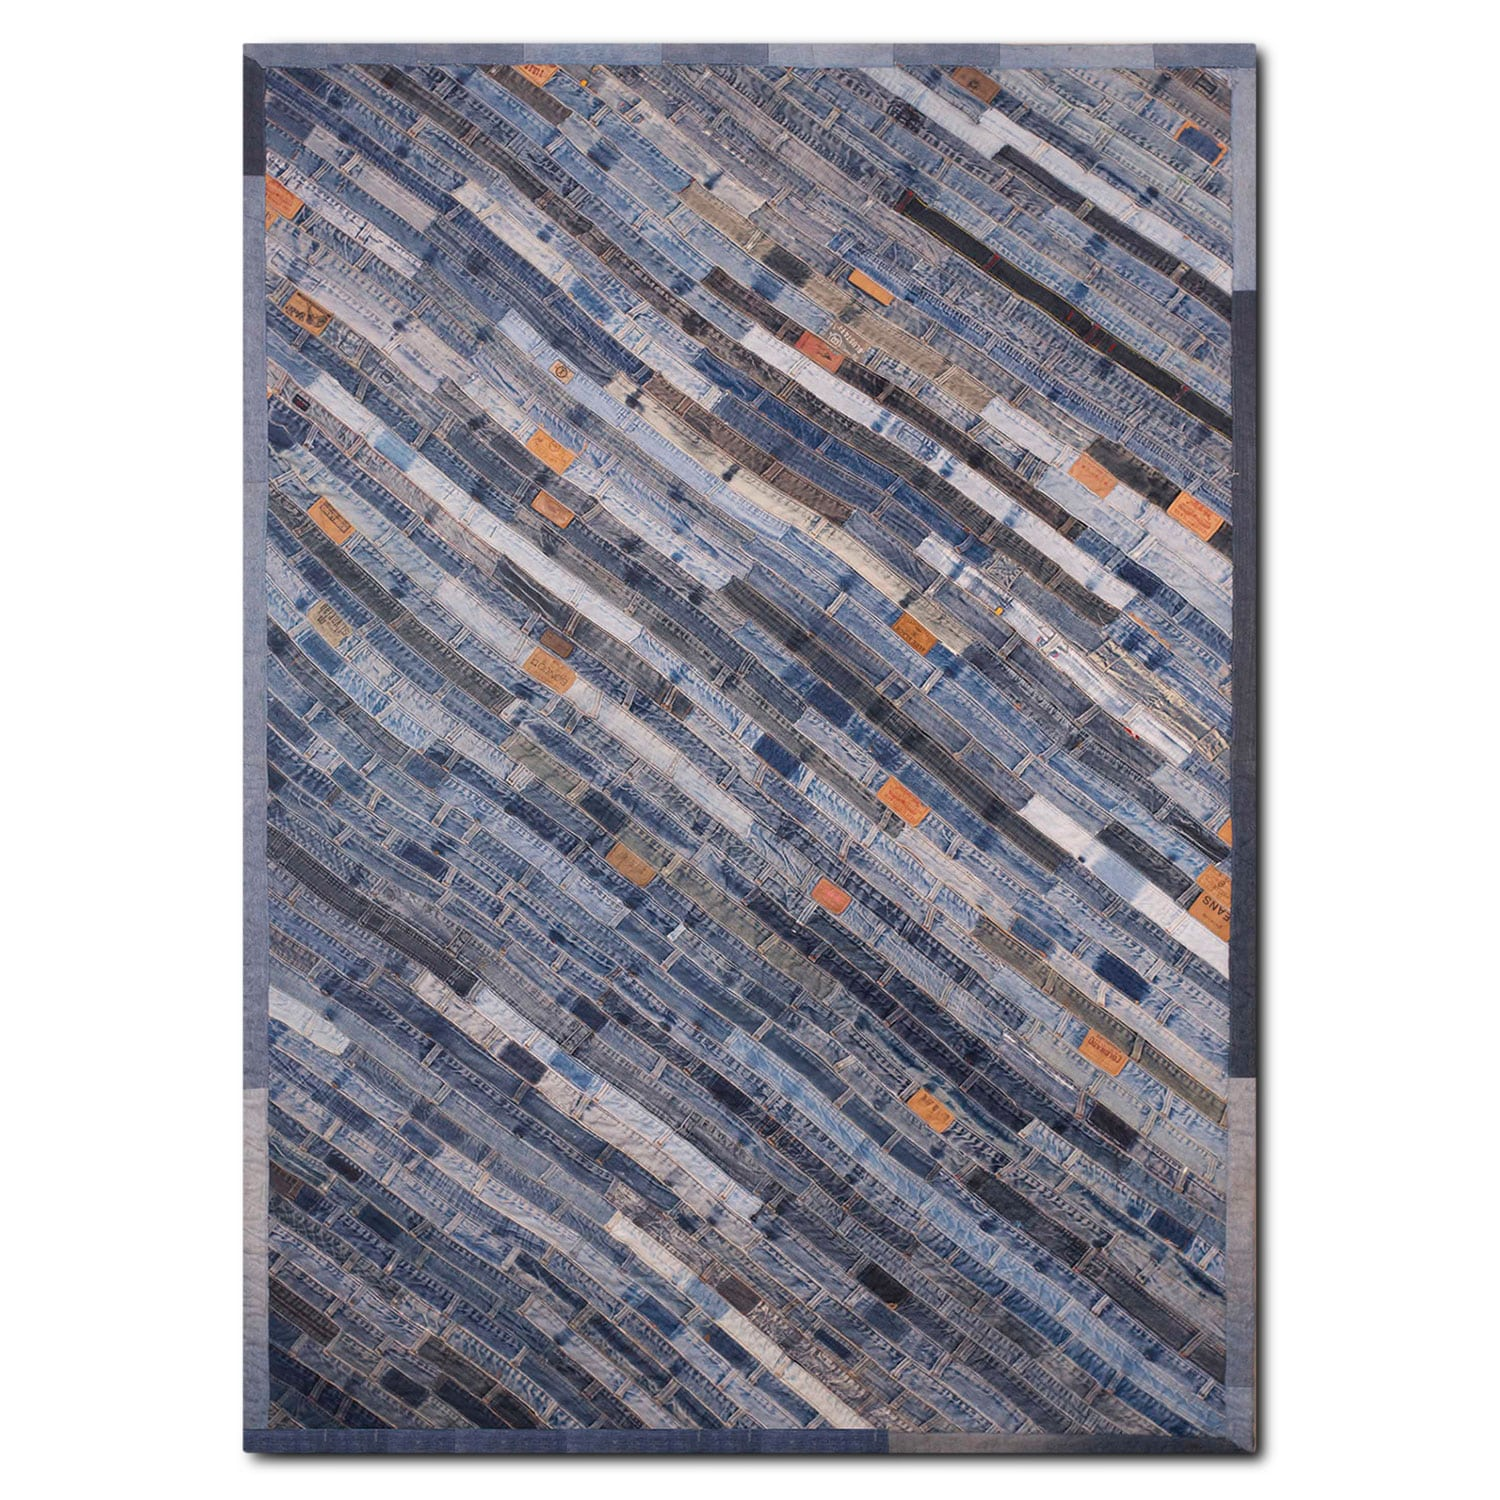 Rugs - Lifestyle 5' x 8' Area Rug - Blue Denim